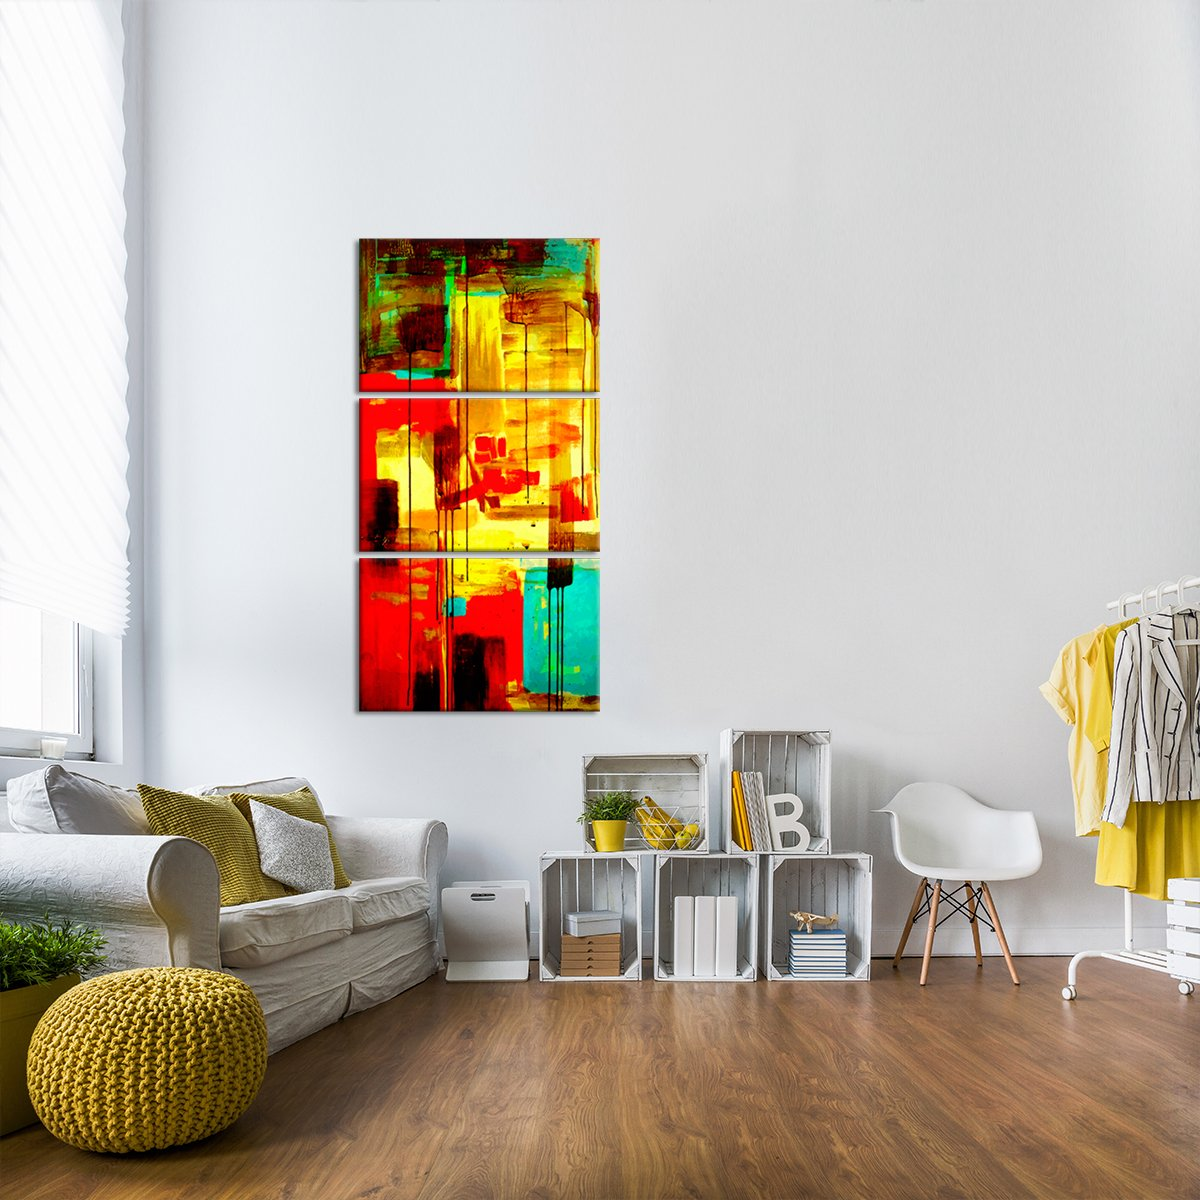 Composition By Greg Multi Panel Canvas Wall Art